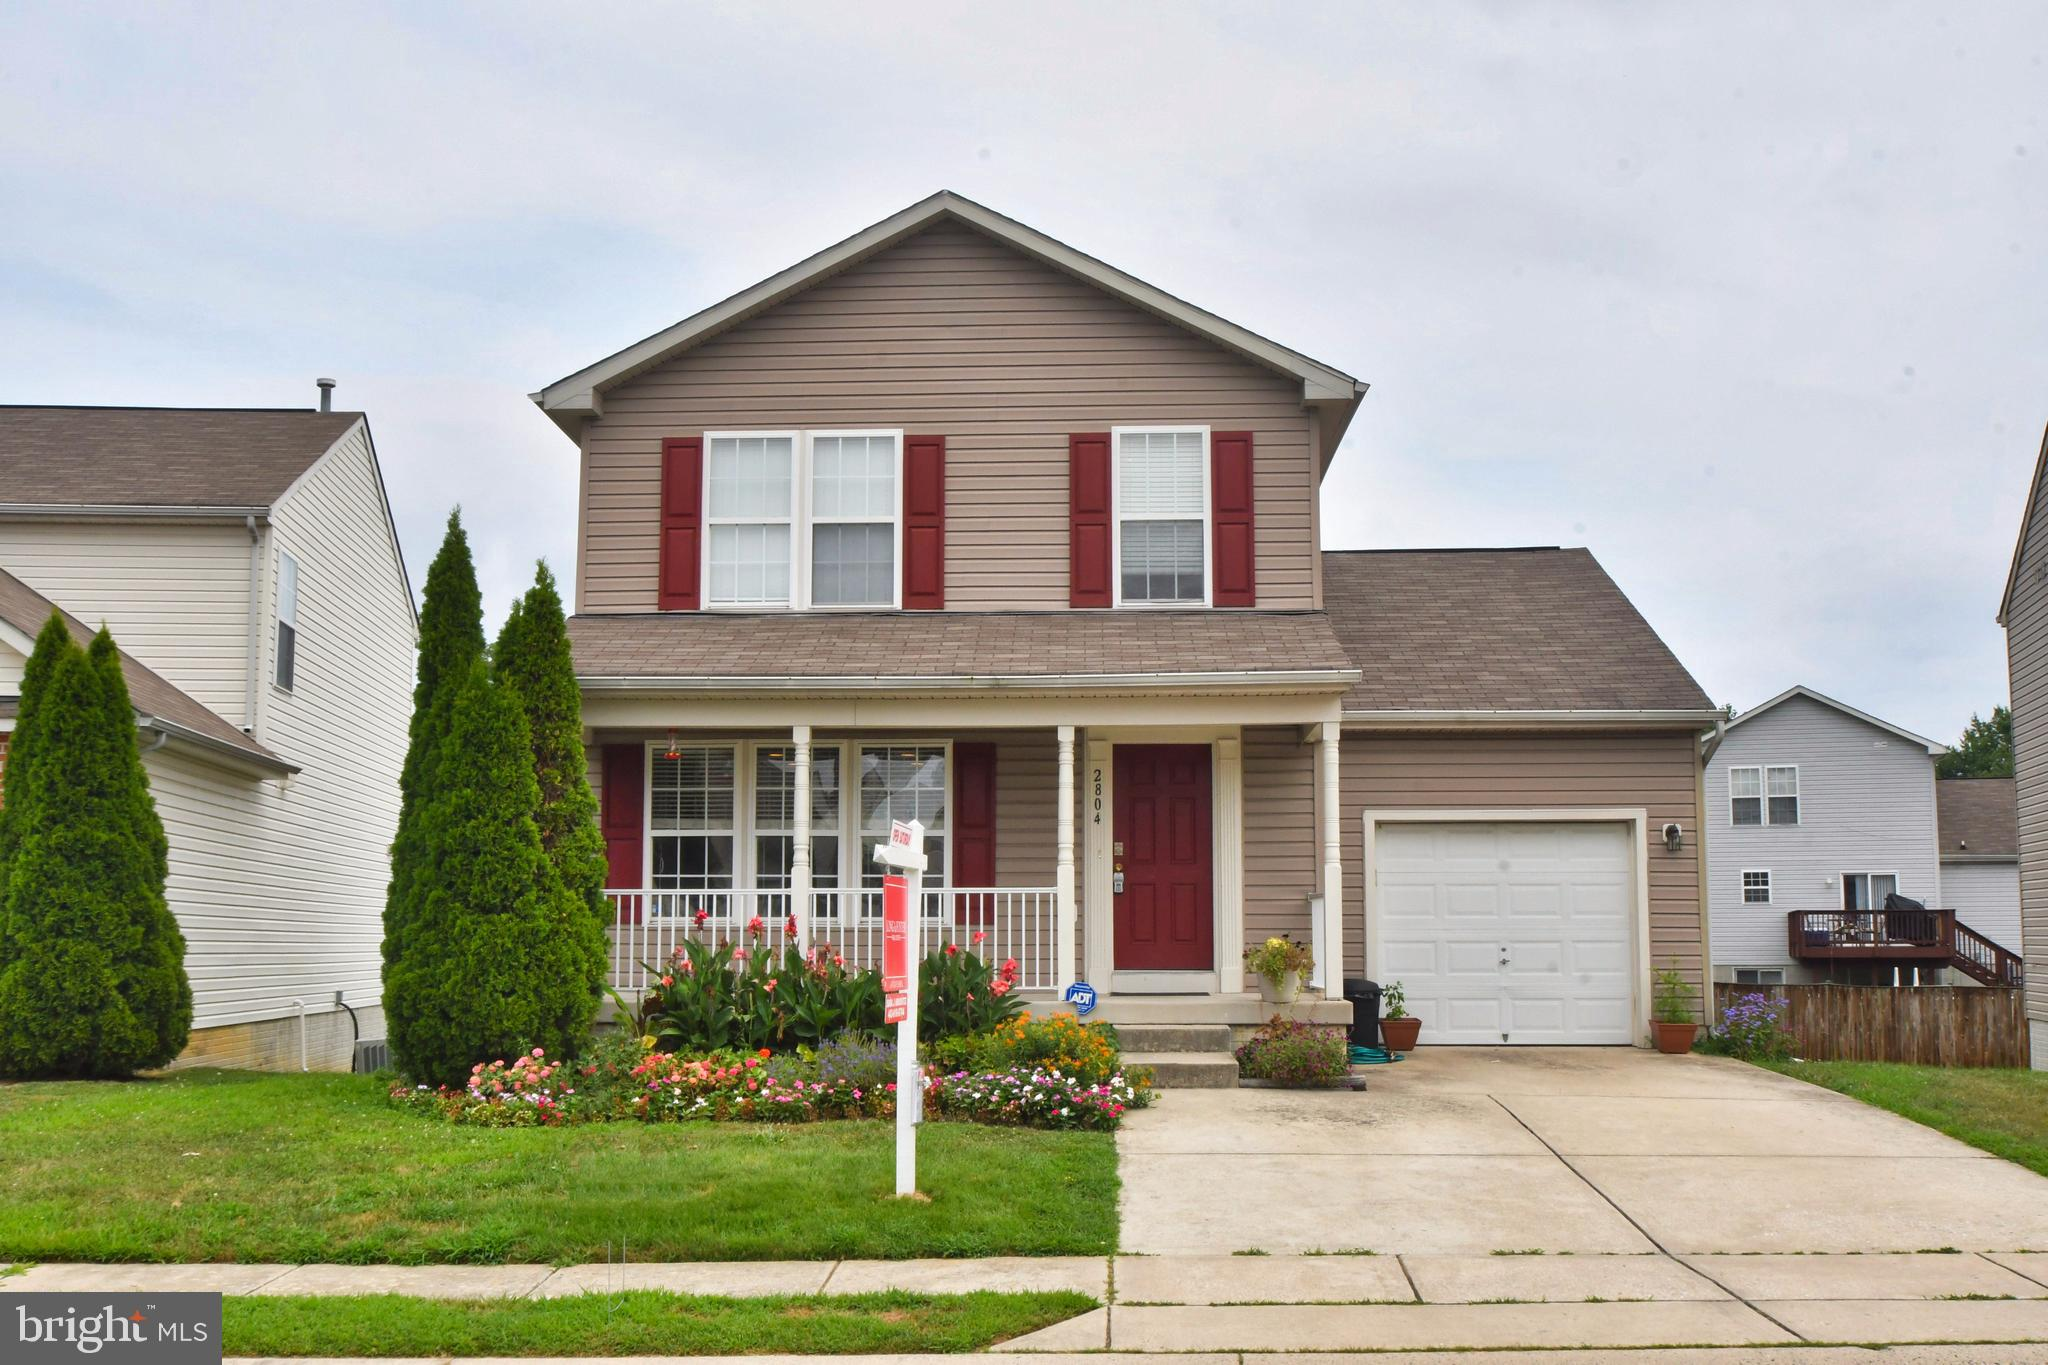 2804 CAPTAINS COVE COURT, EDGEWOOD, MD 21040